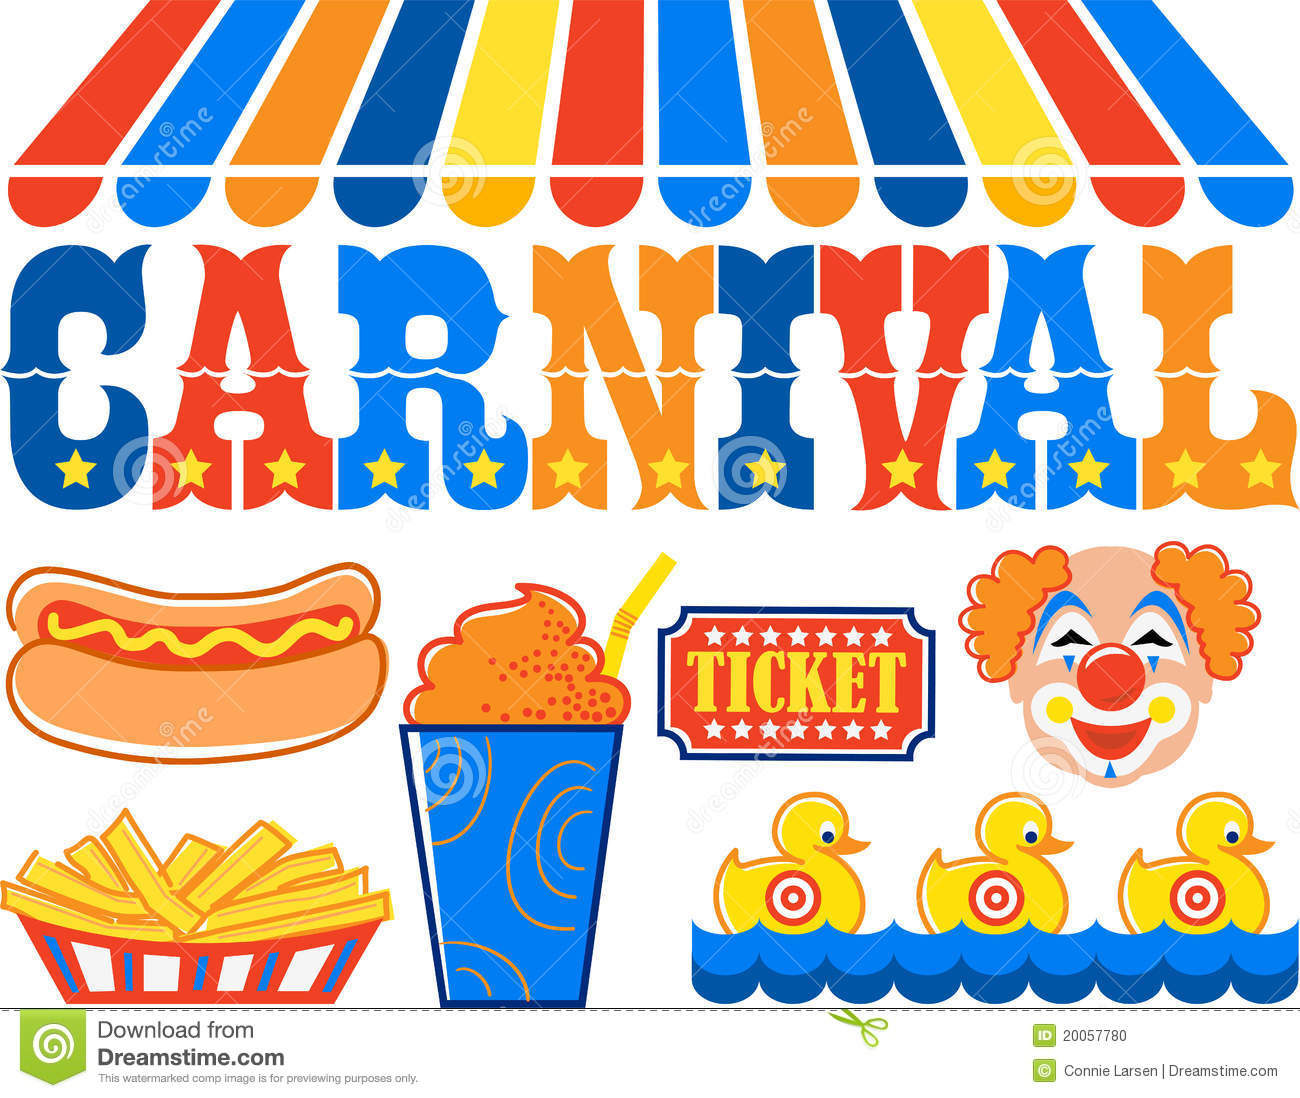 Headline Illustration Of The Word Carnival With Hot Dog Fries Slushy